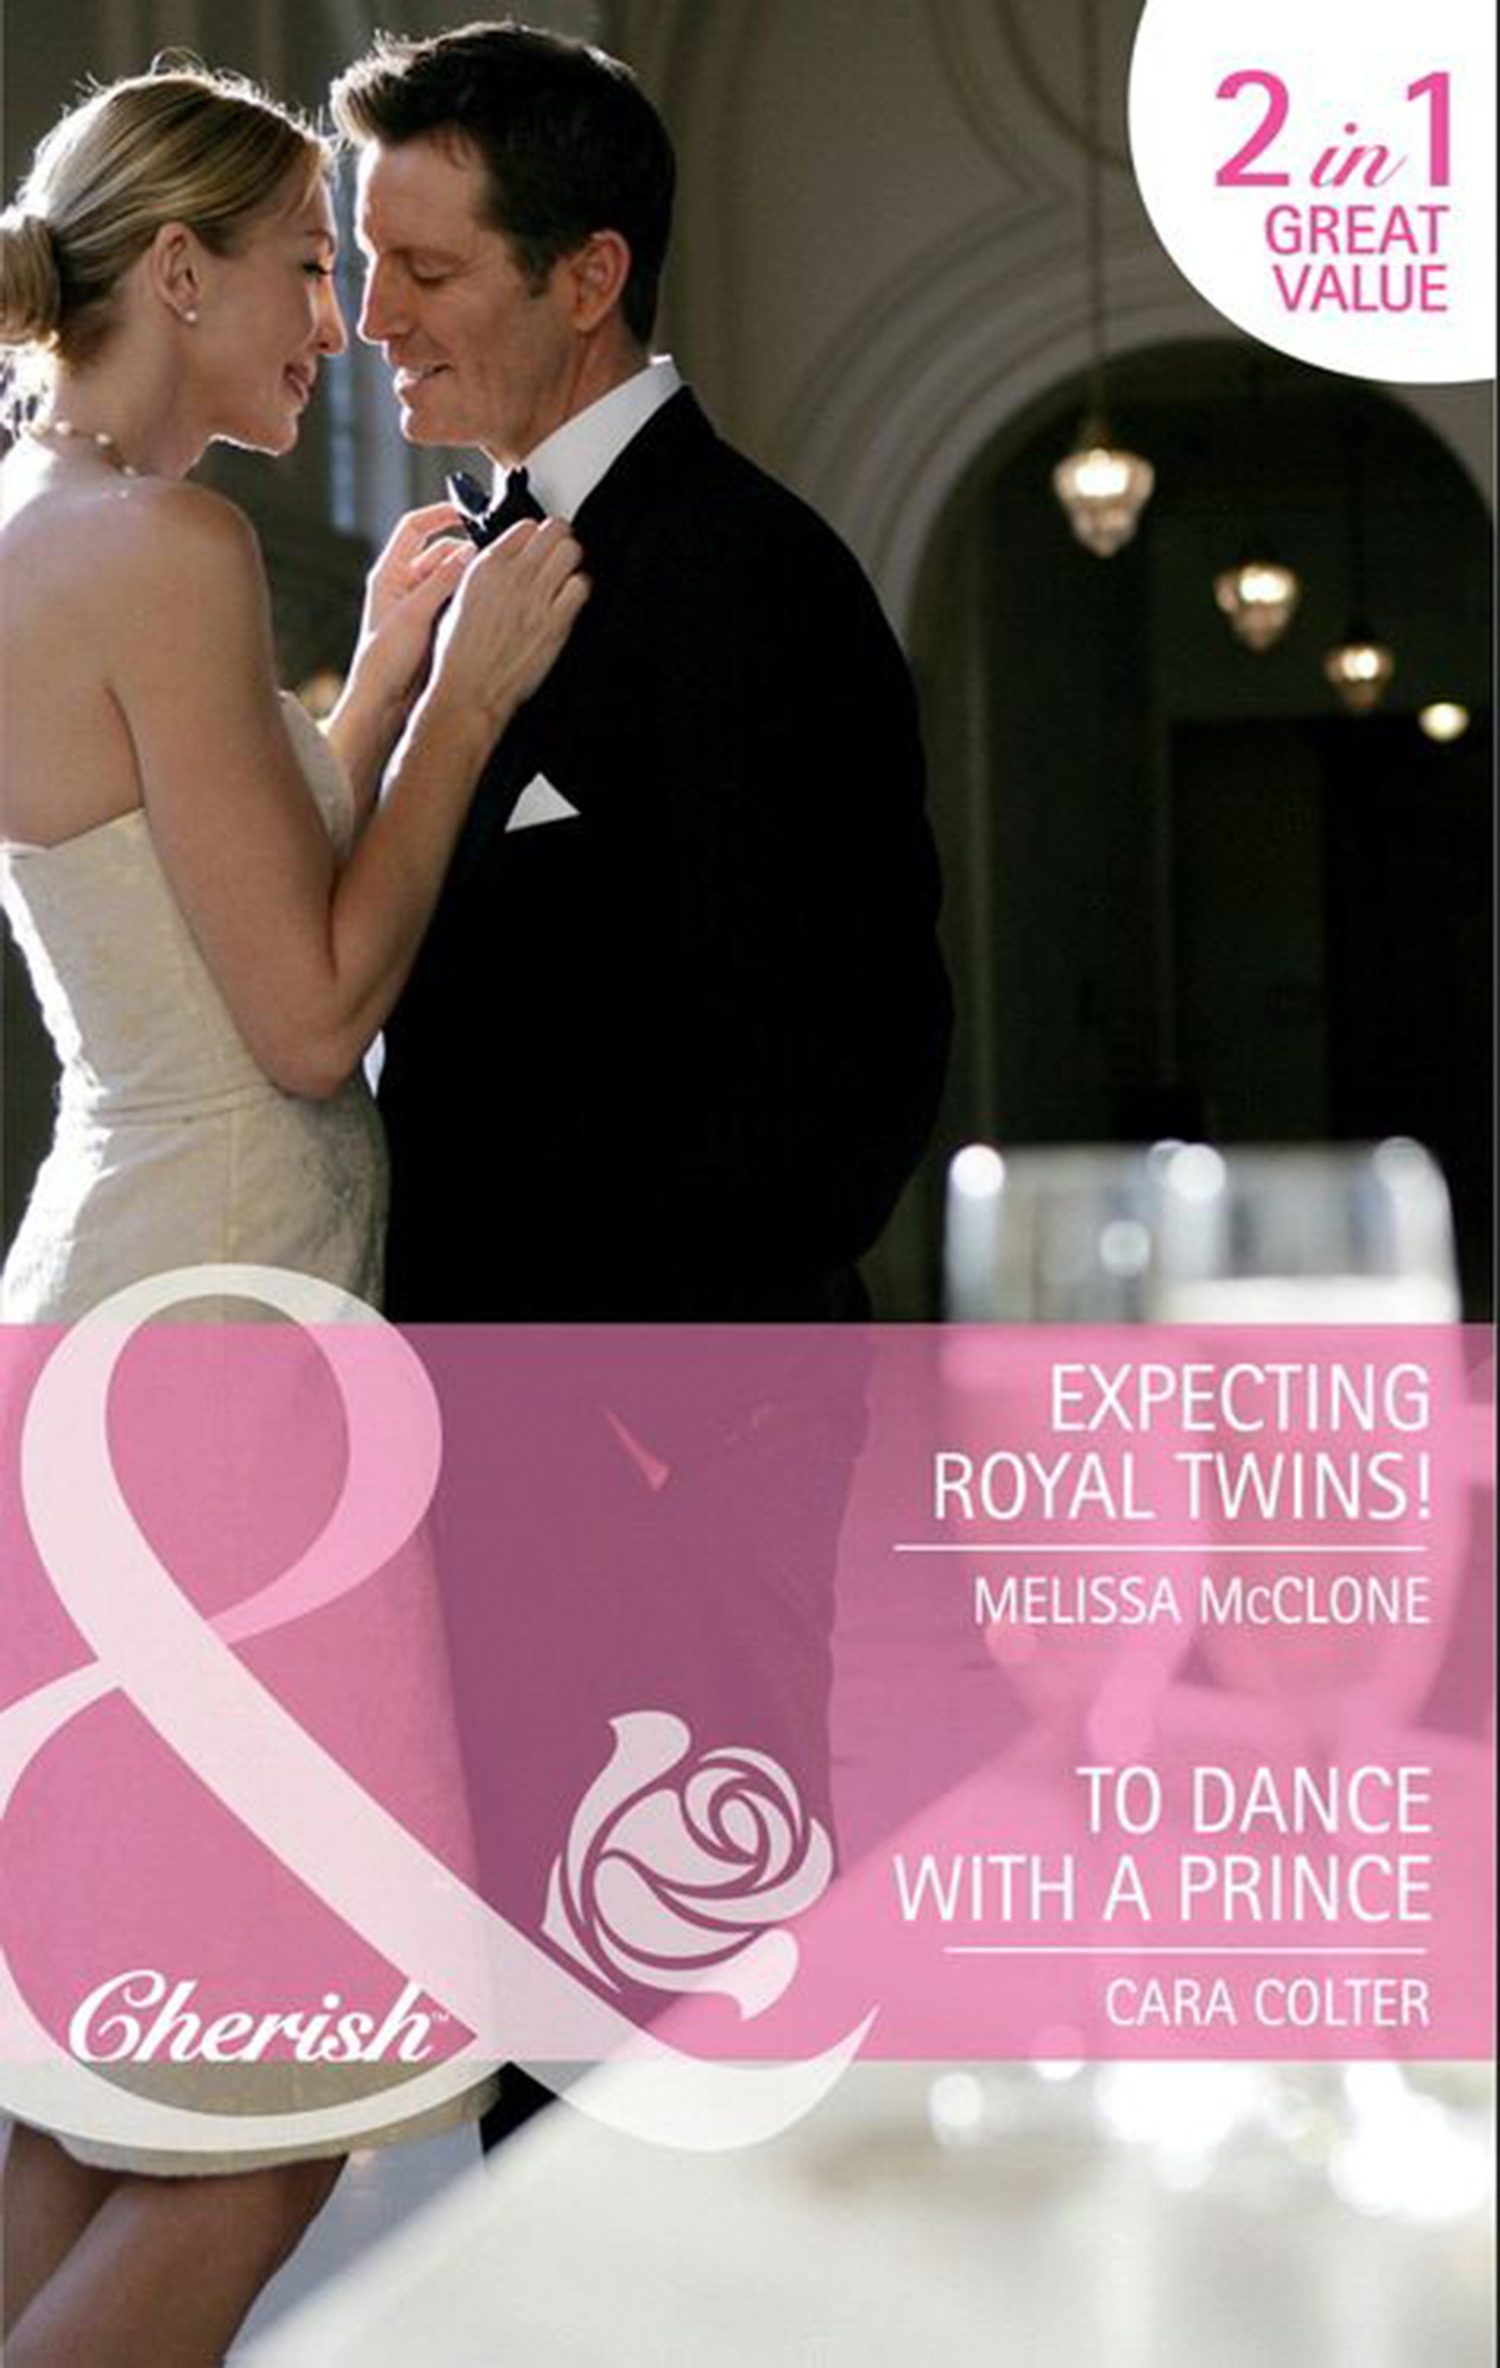 Expecting Royal Twins! / To Dance with a Prince